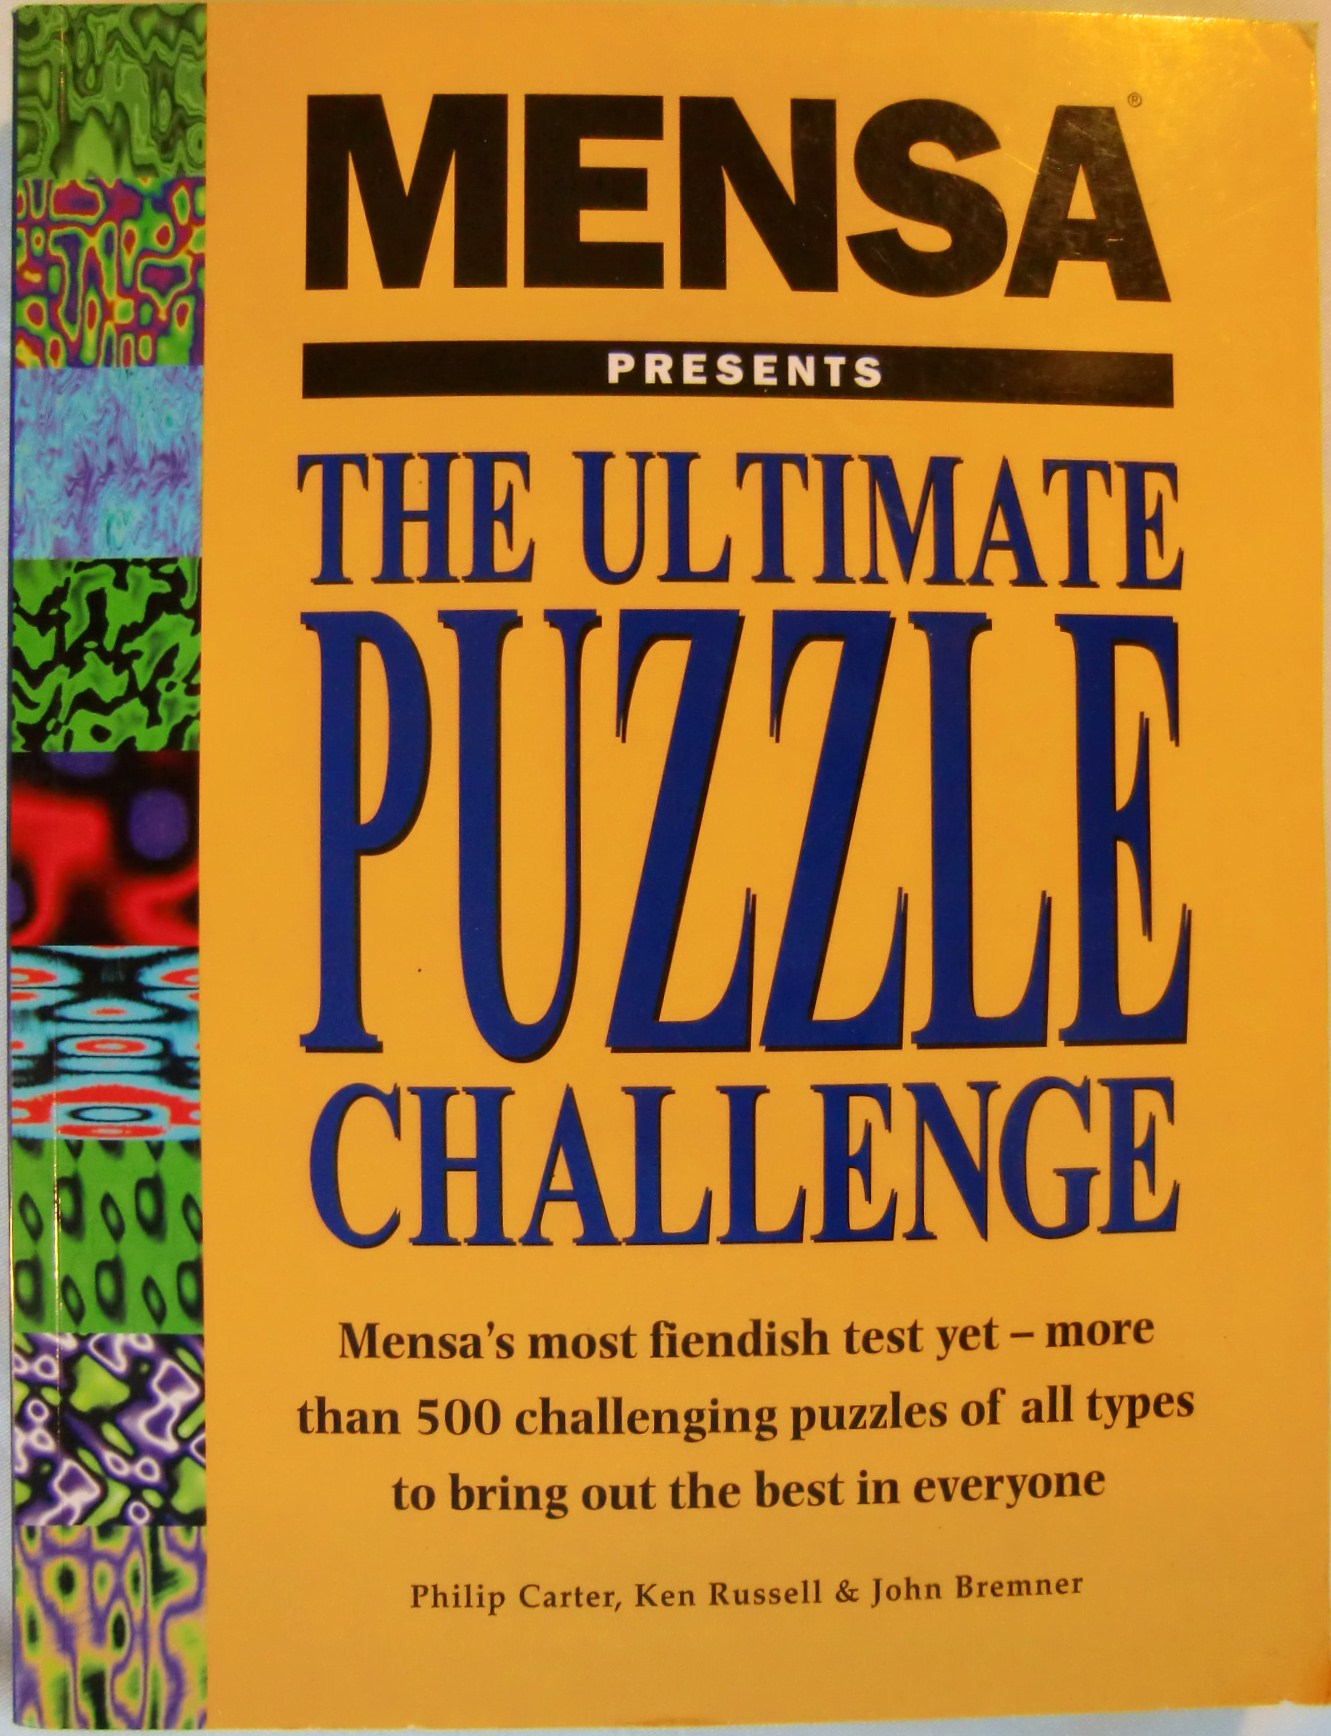 Mensa Presents The Ultimate Puzzle Challenge